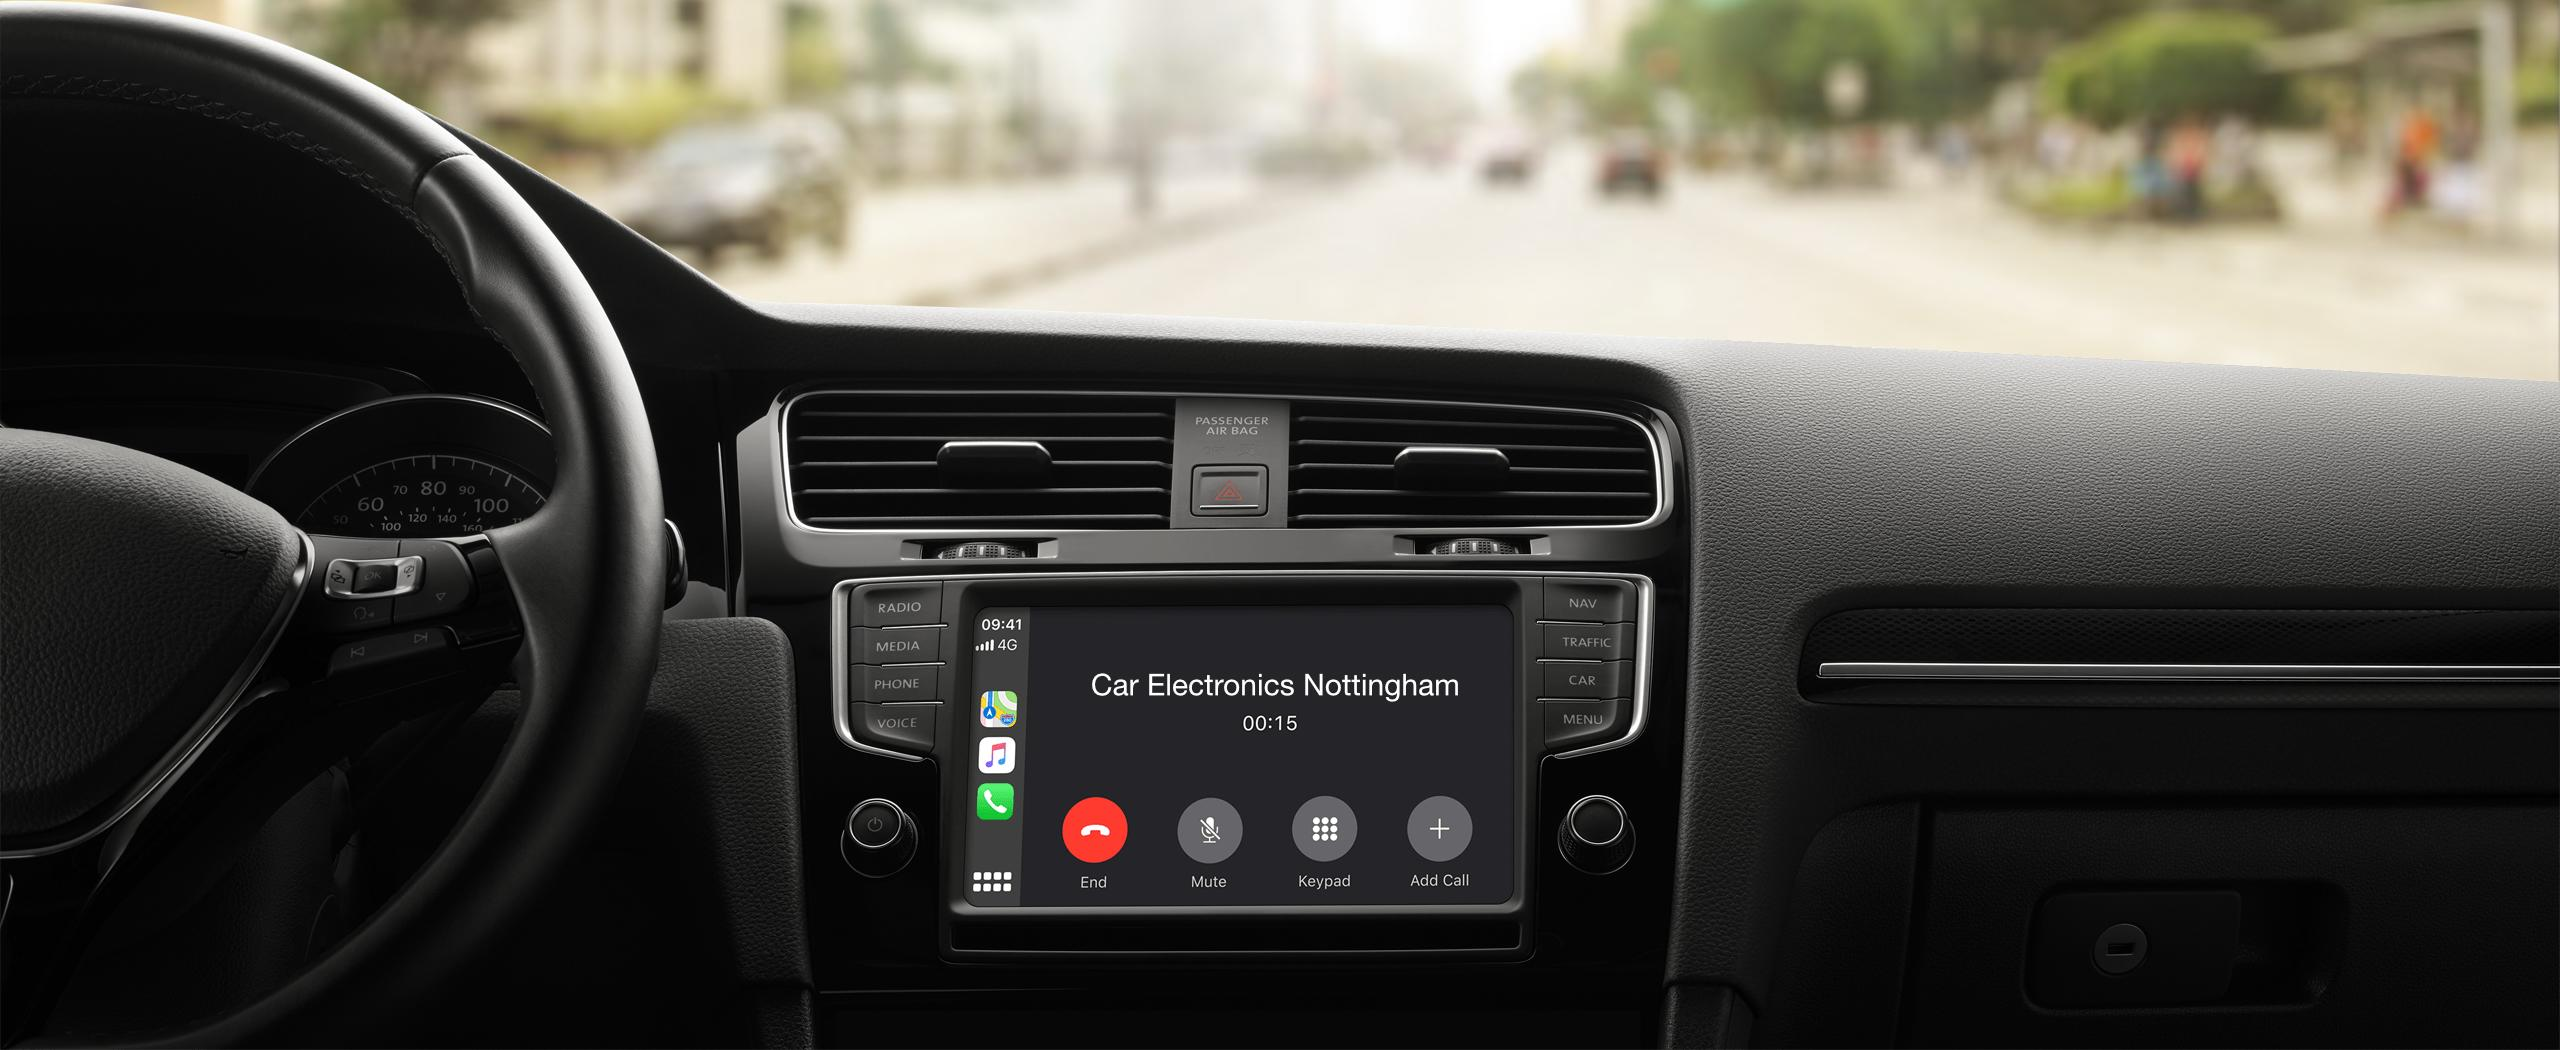 apple CarPlay upgrade audi bmw mercedes volkswagen porsche nottingham